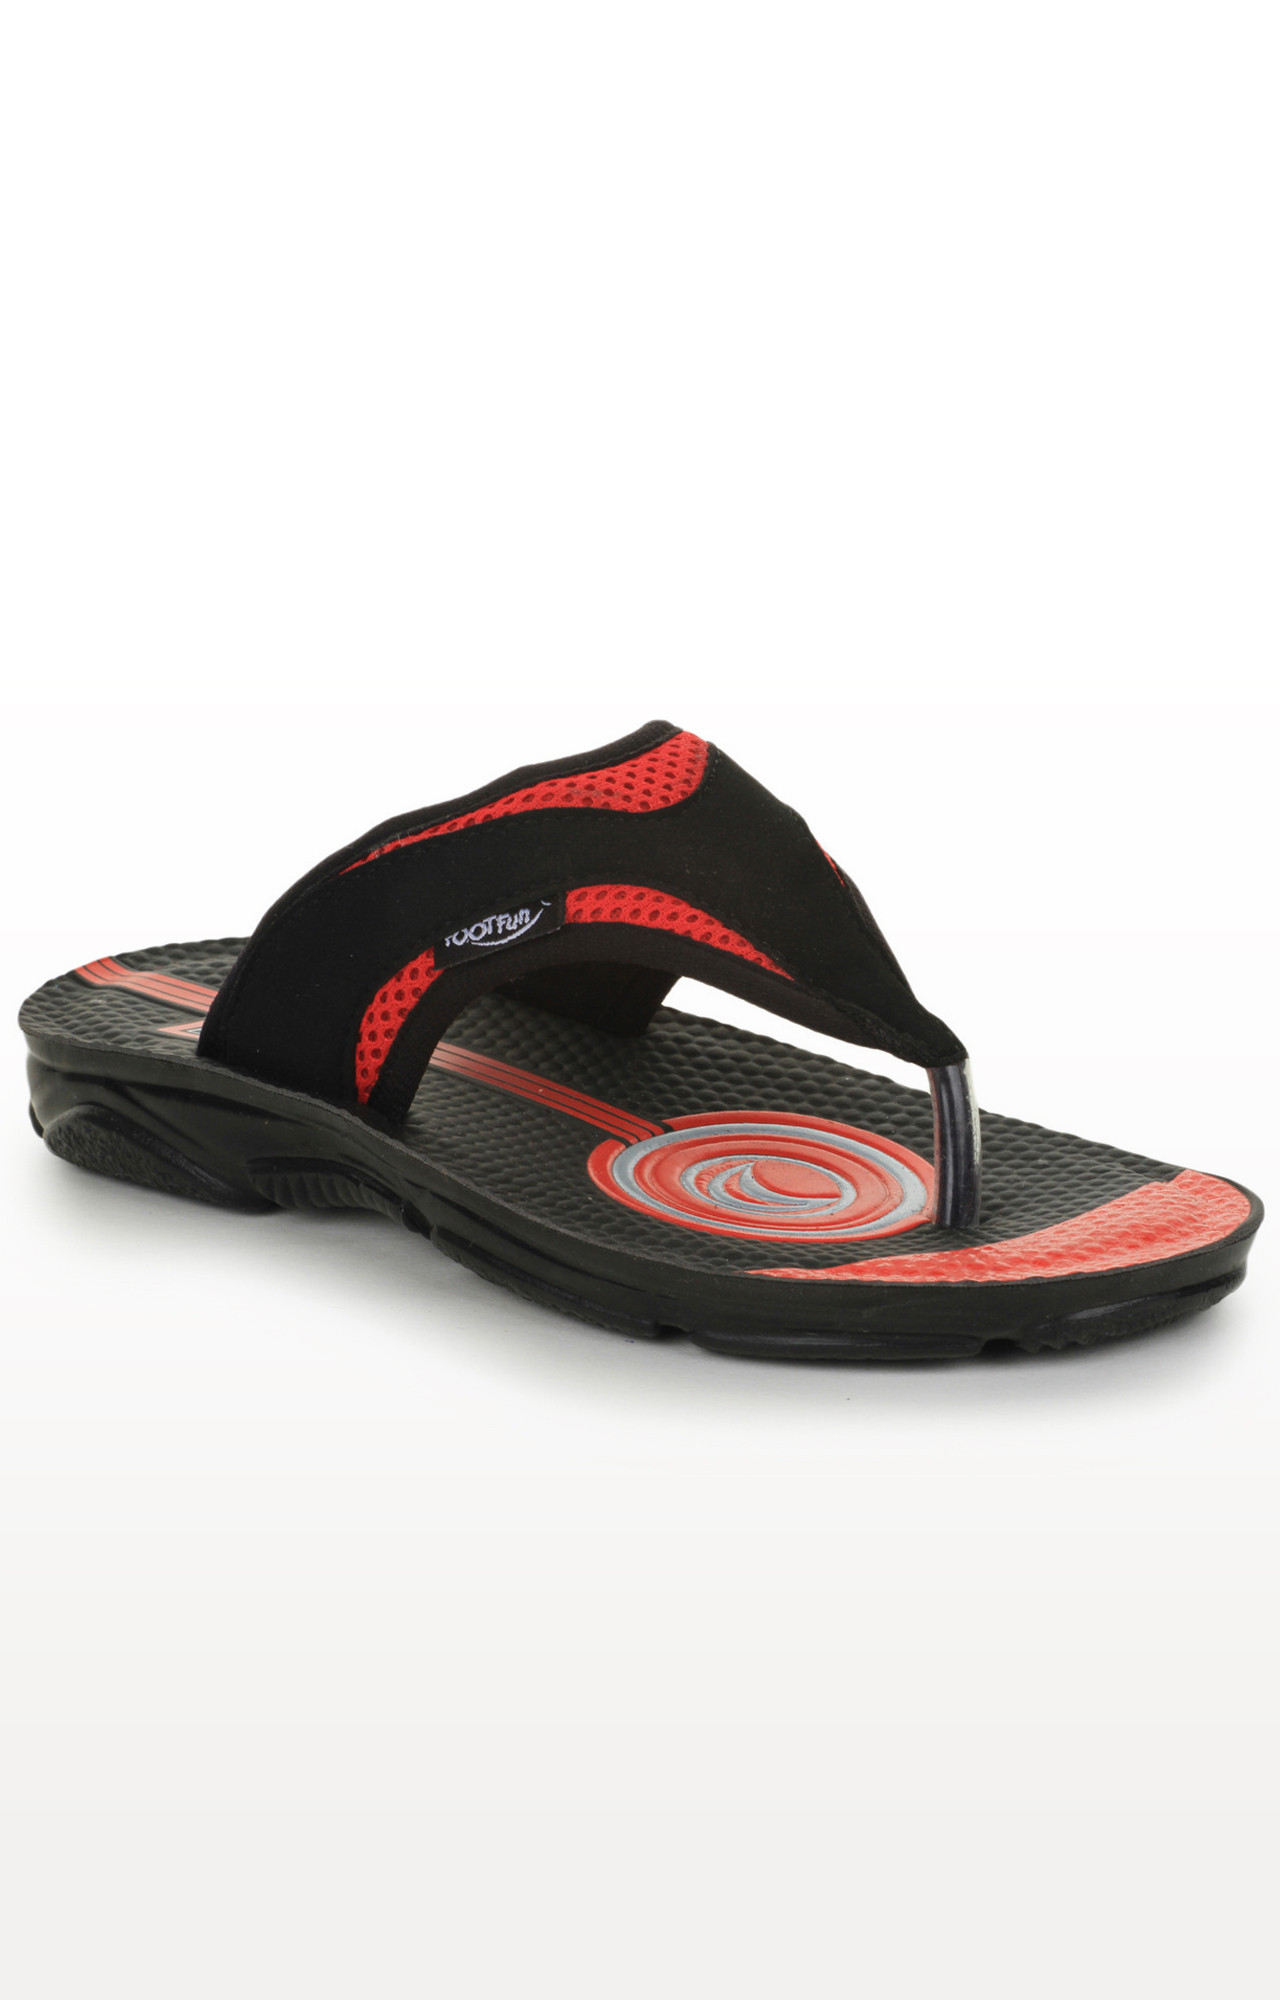 Liberty | Lucy & Luke by Liberty Red Flip Flops